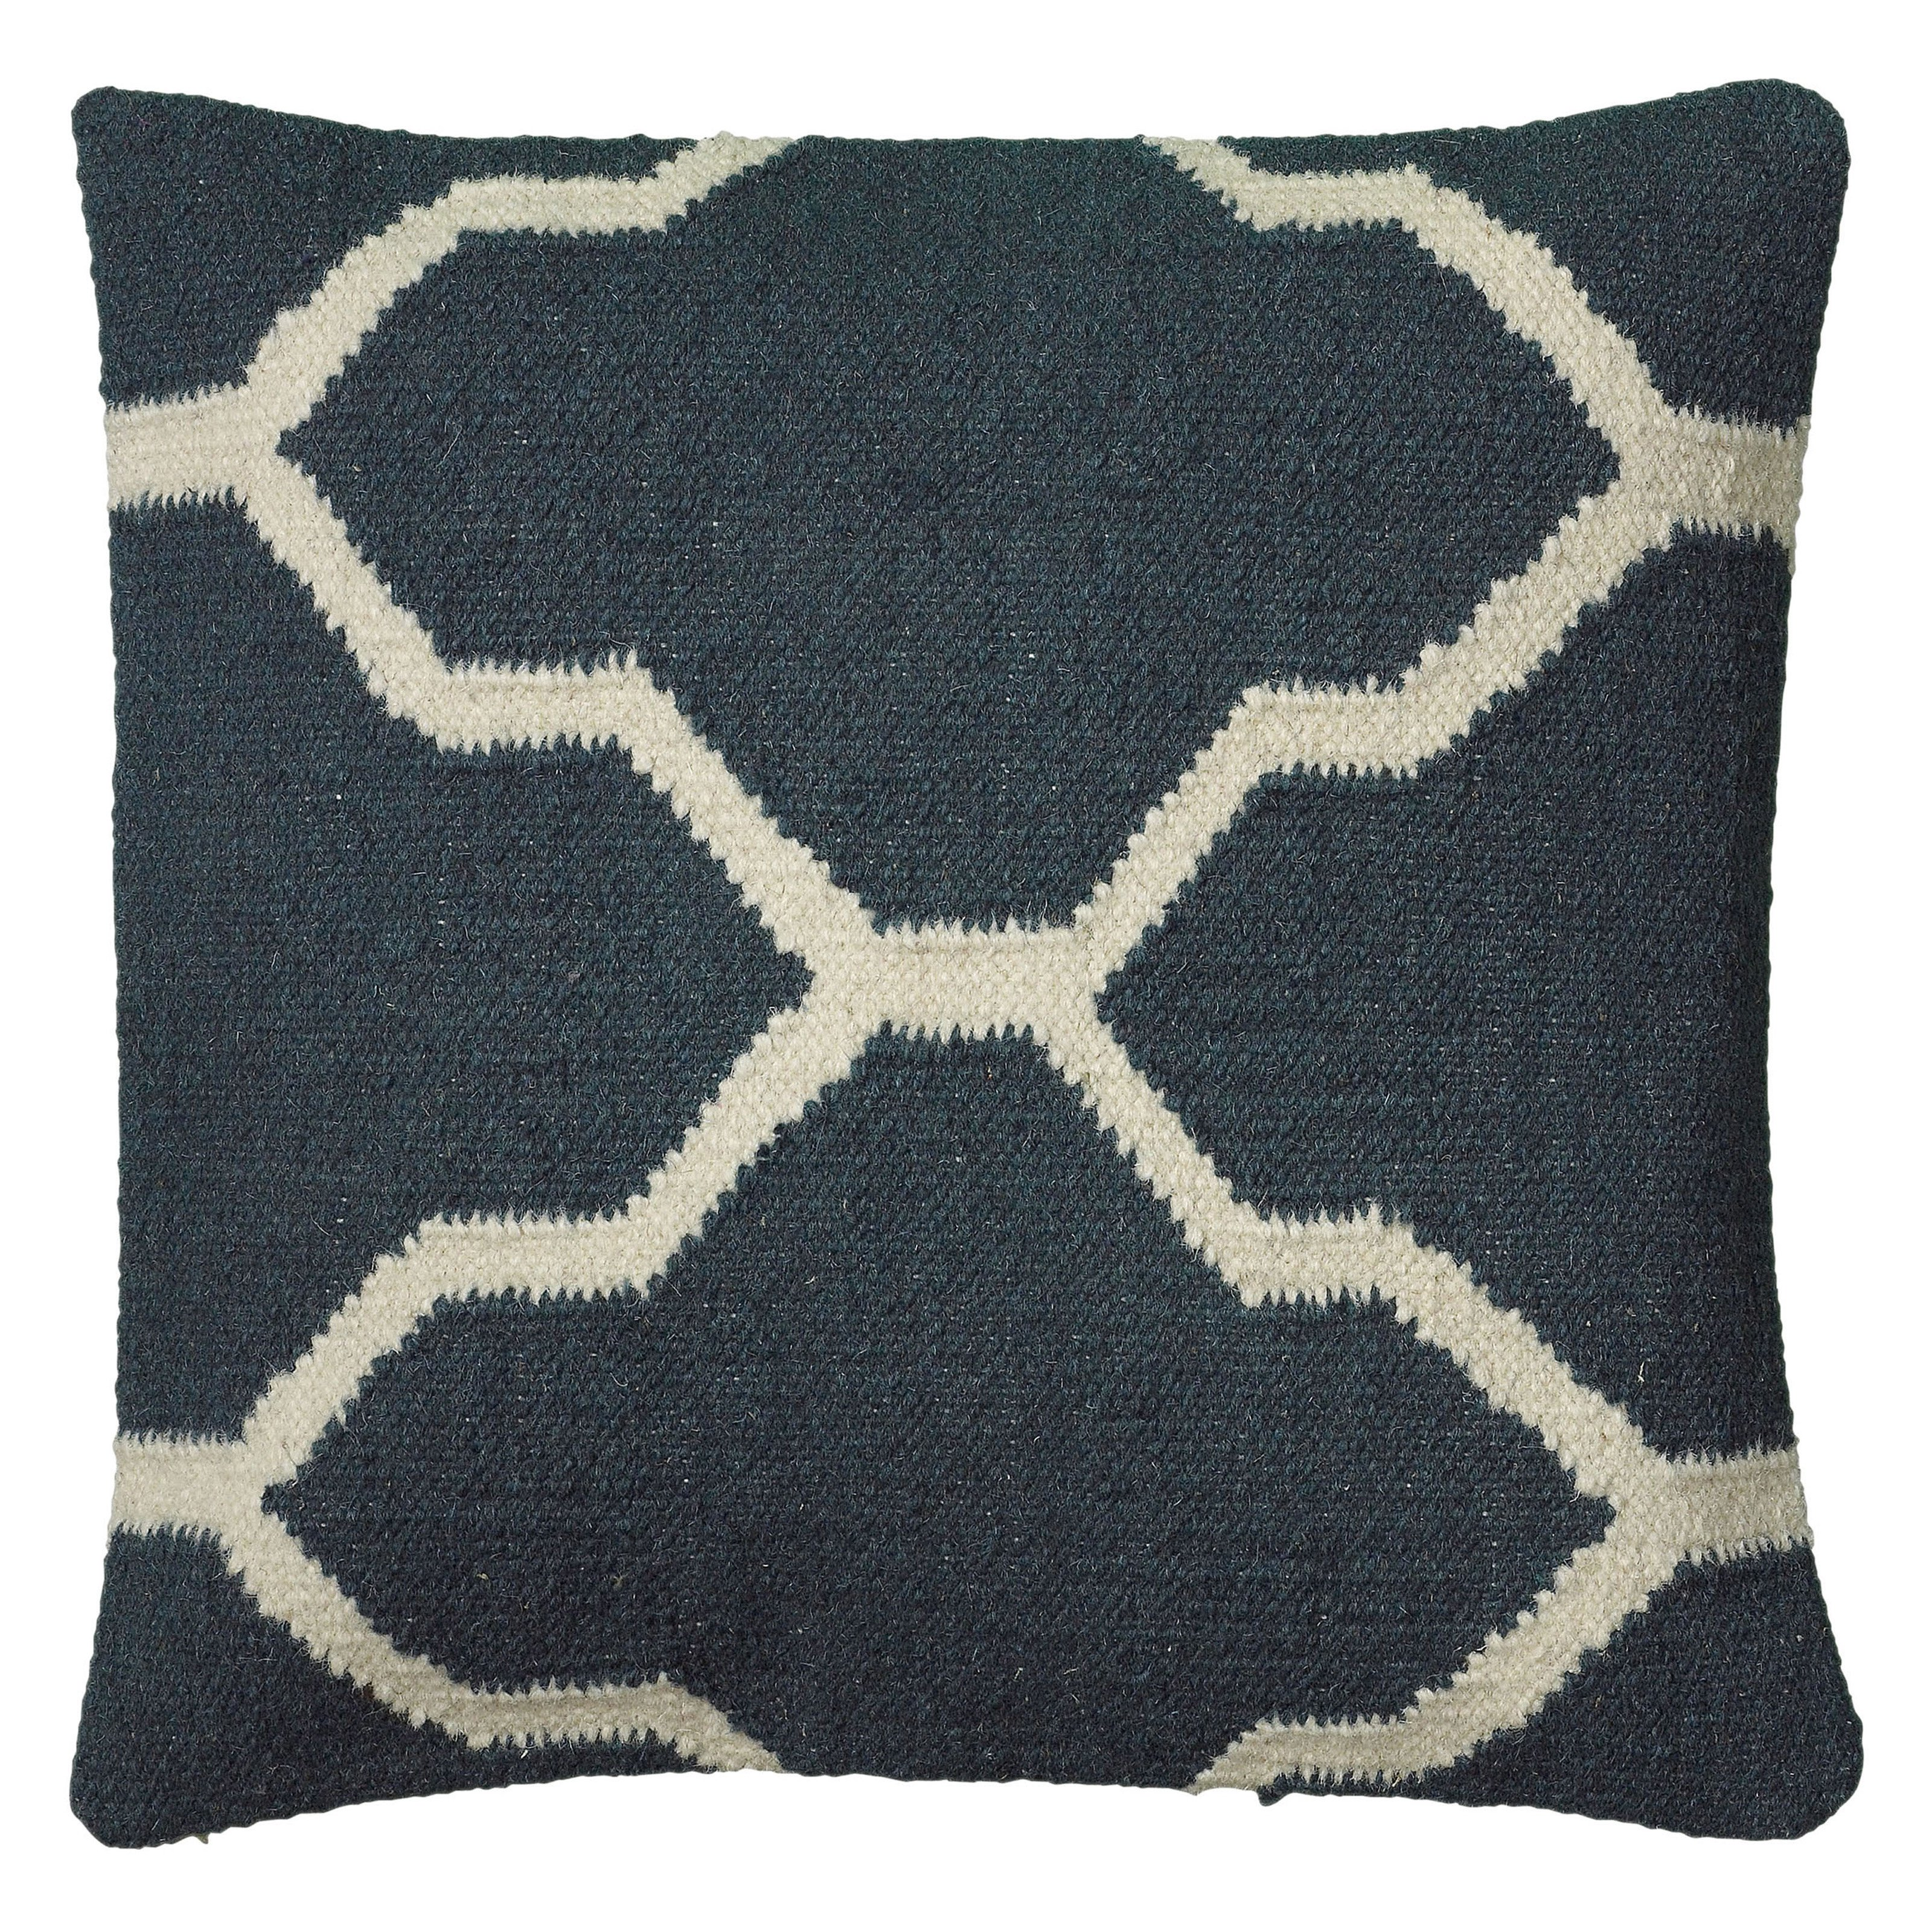 Rizzy Home Decorative Geometric Throw Pillow - 18W x 18H in.